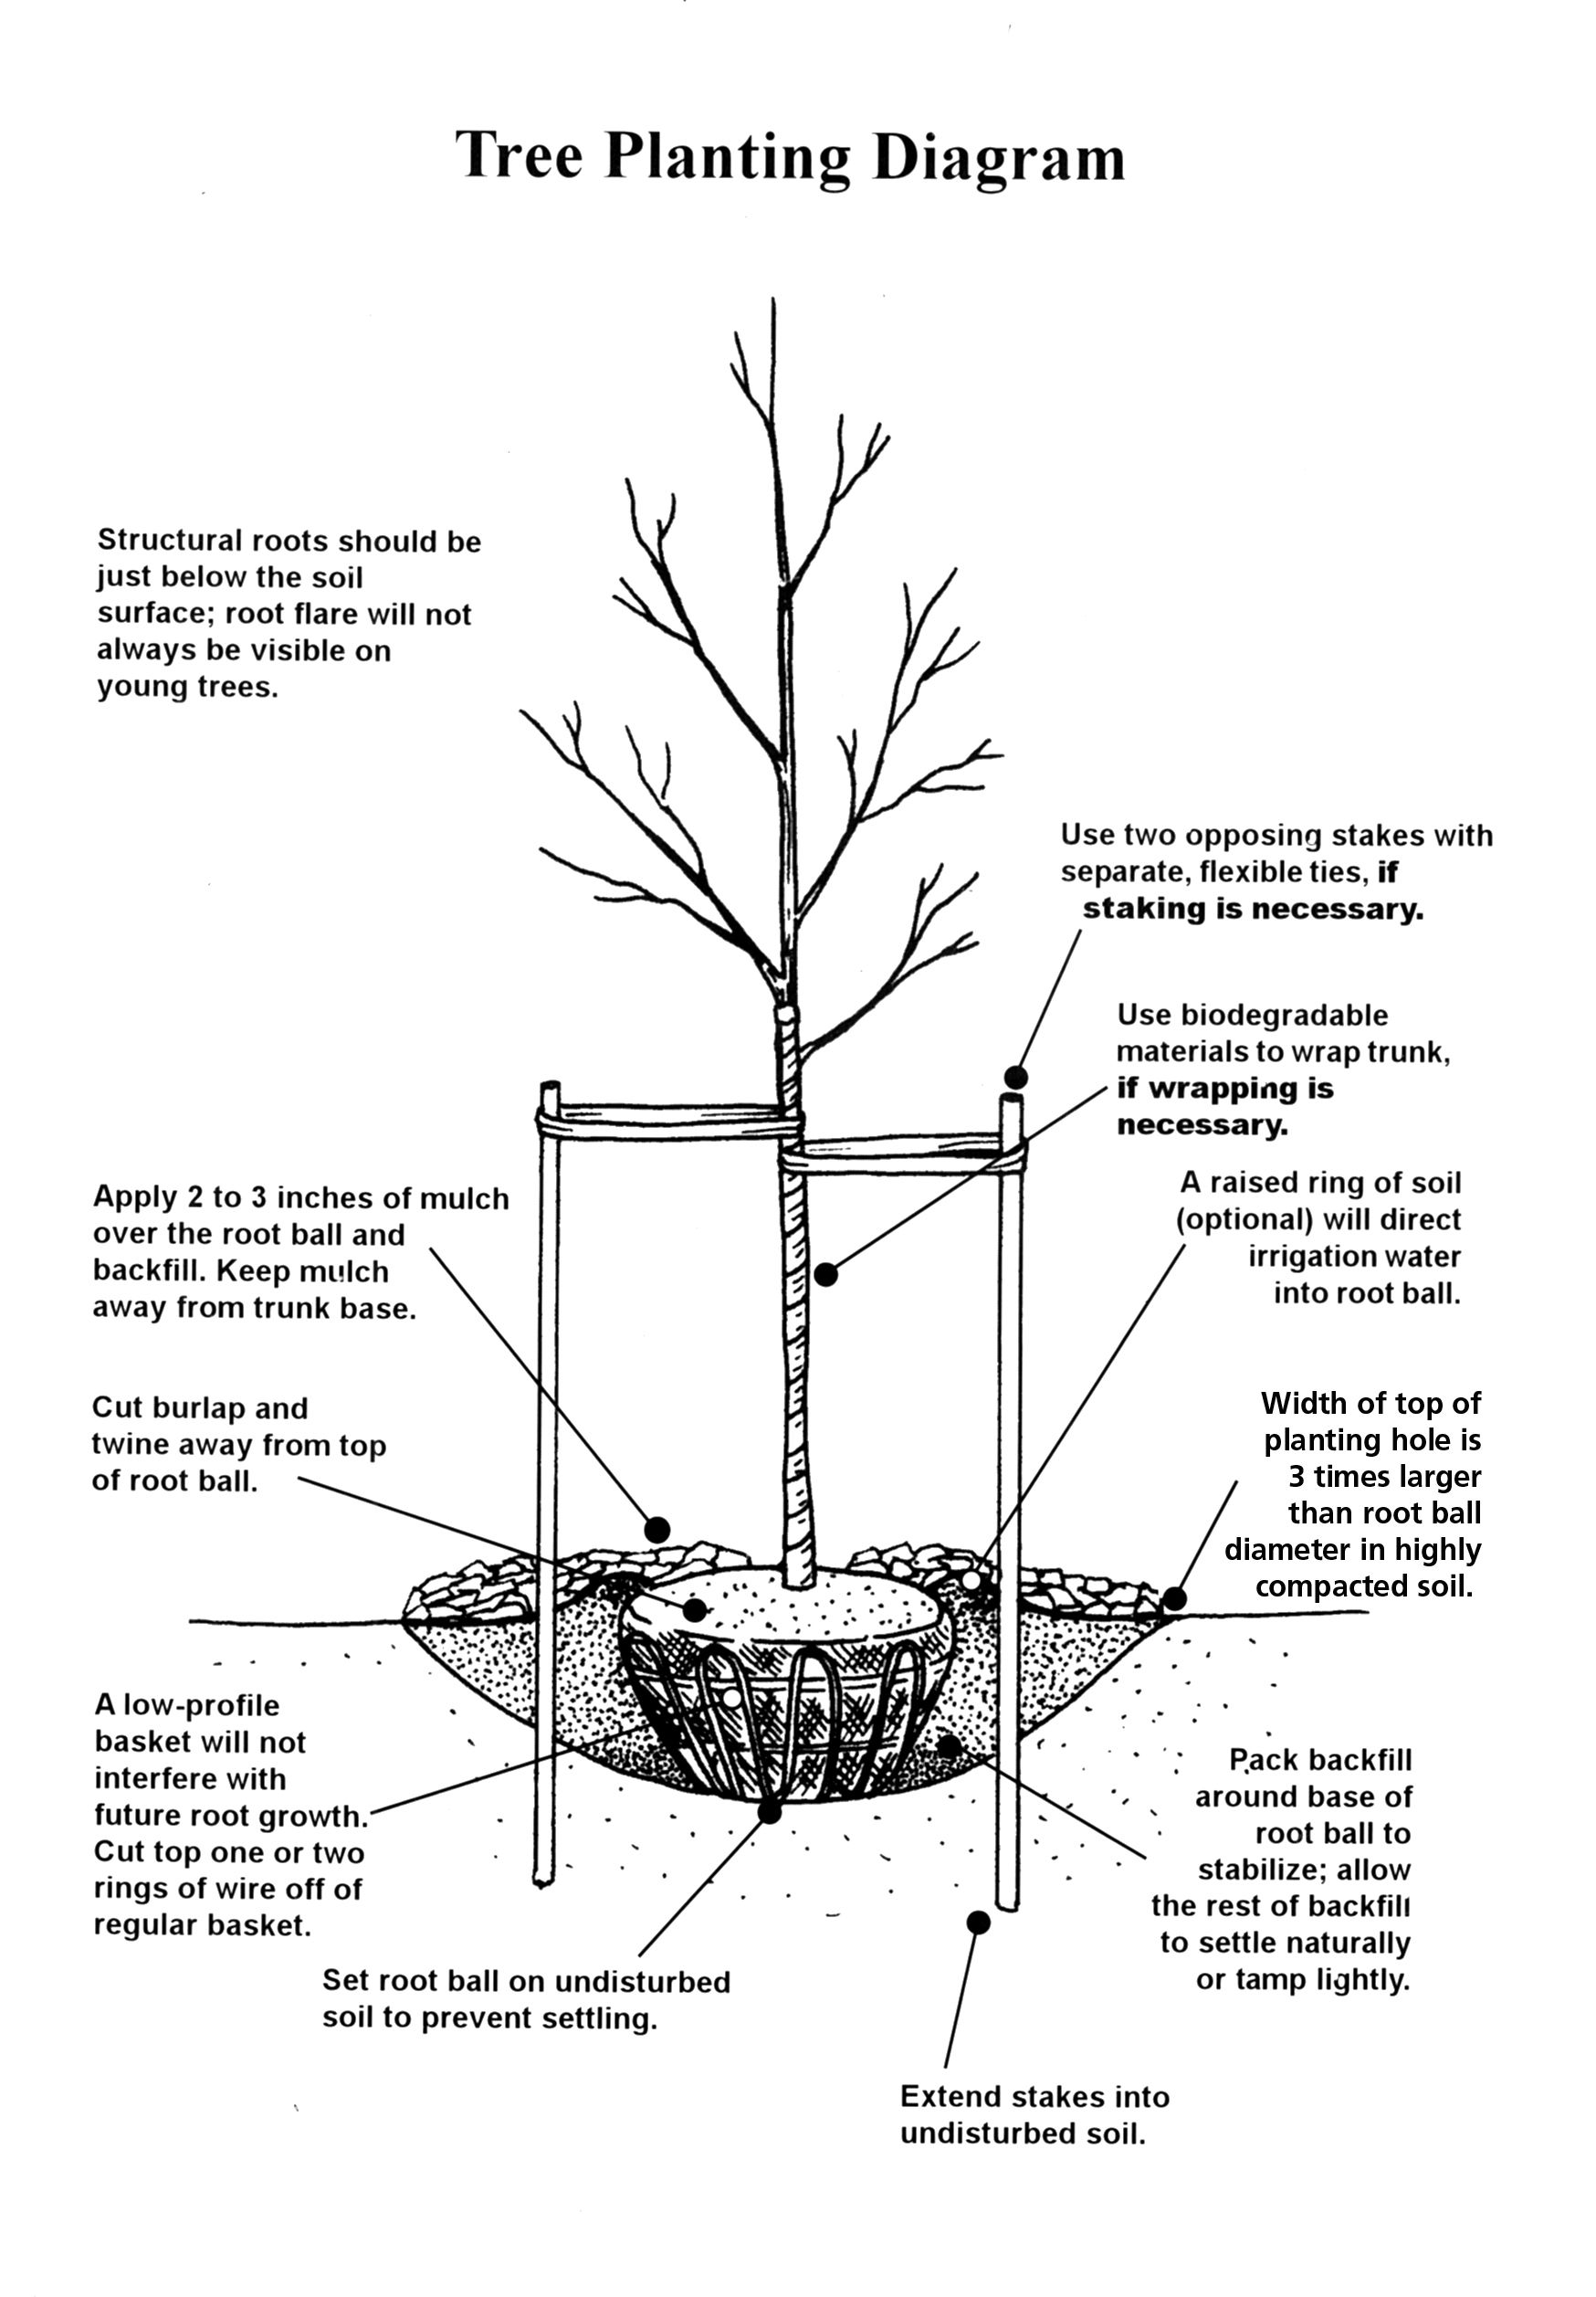 medium resolution of tree planting diagram fruit trees trees to plant tree planting house yard